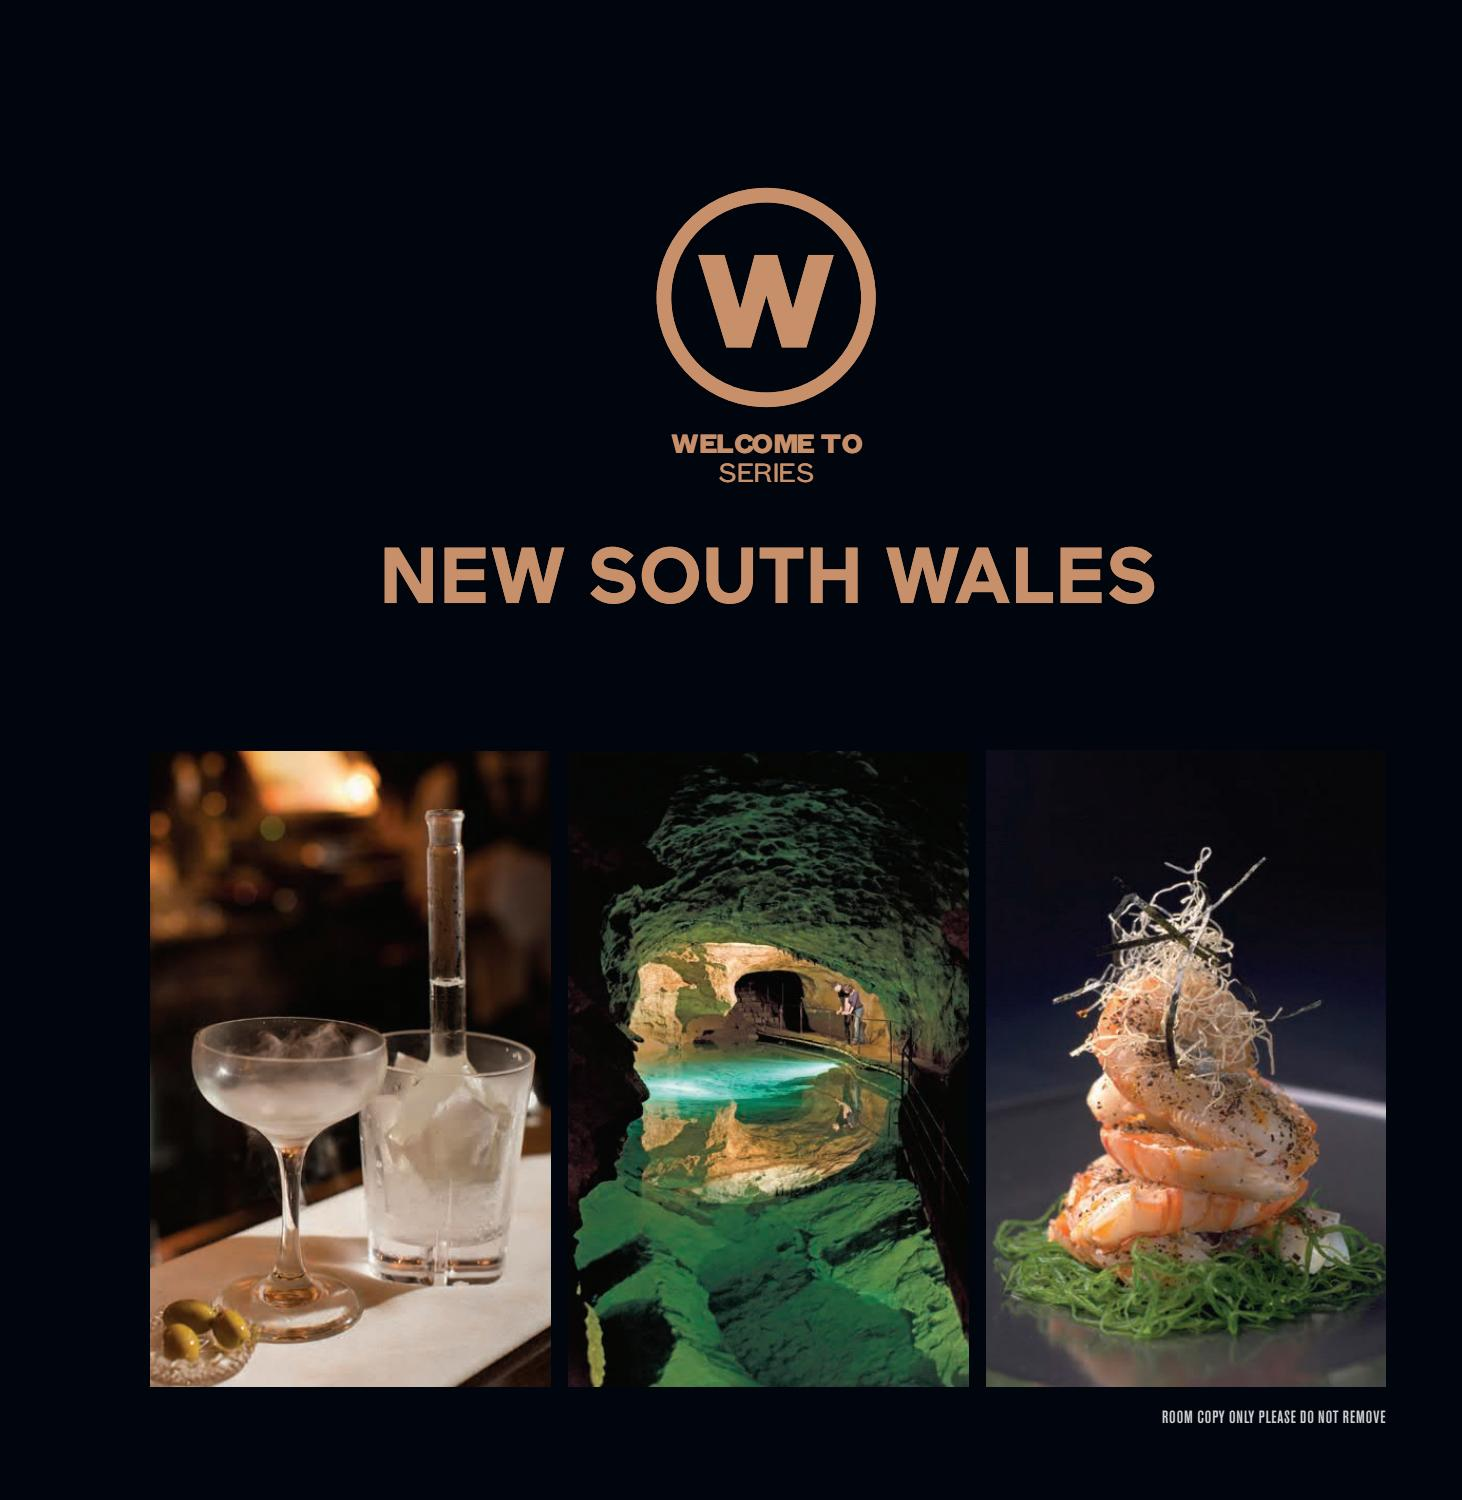 a1ccd864ef3 Welcome To: New South Wales 2017 by Niche Media - issuu